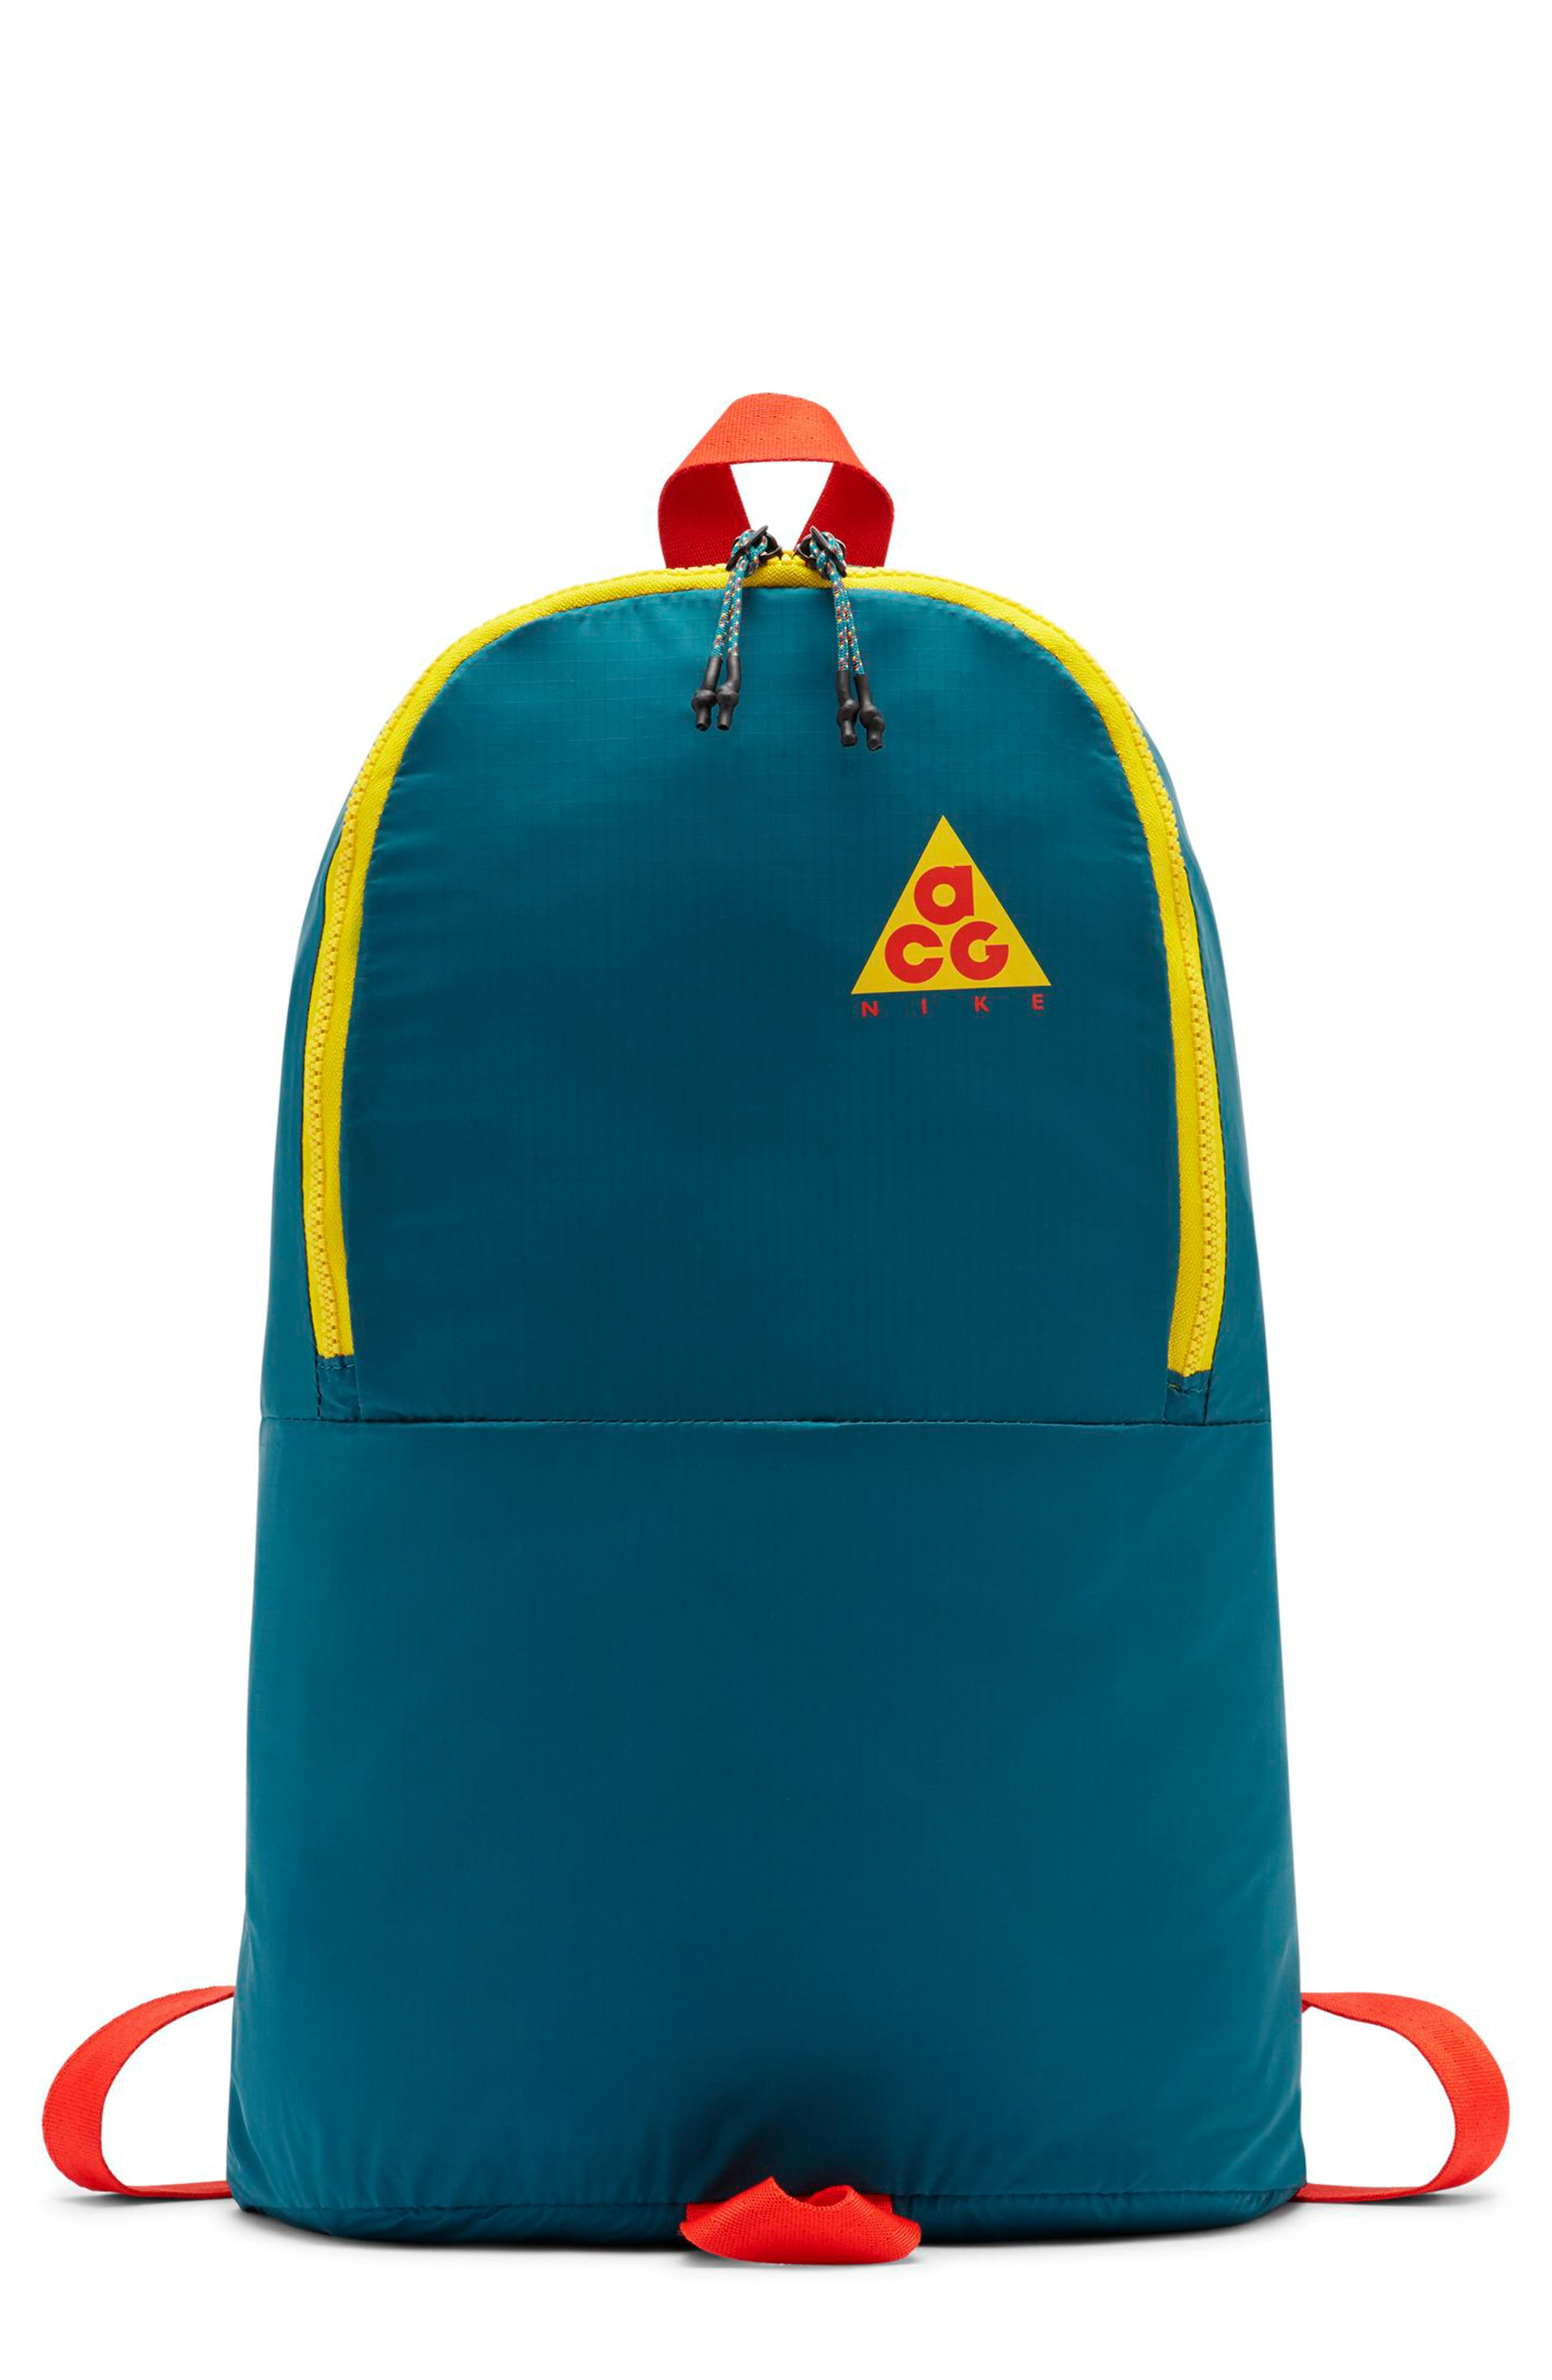 ACG Packable Backpack,                             Main thumbnail 1, color,                             GEODE TEAL/ GEODE TEAL